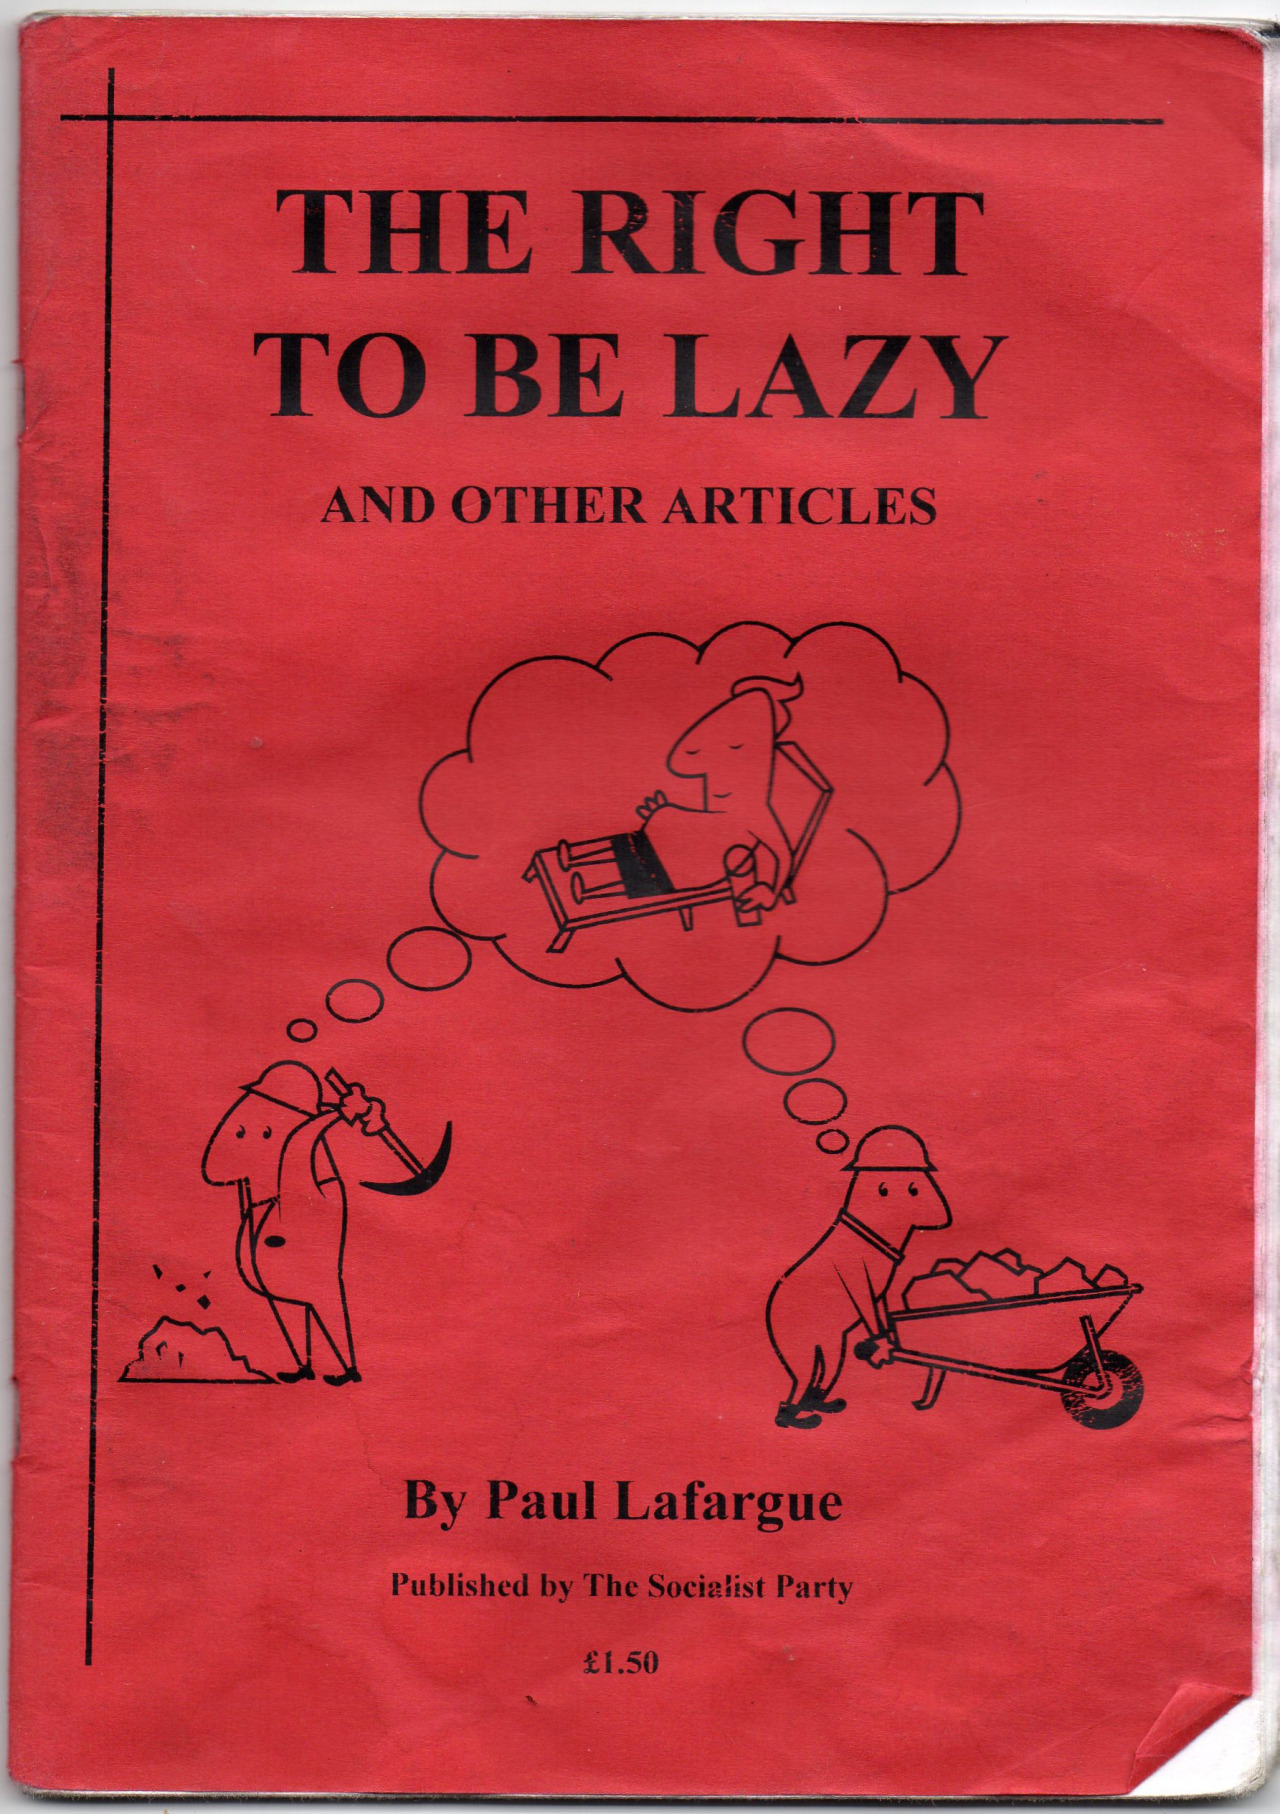 lafargue-the right to be lazy